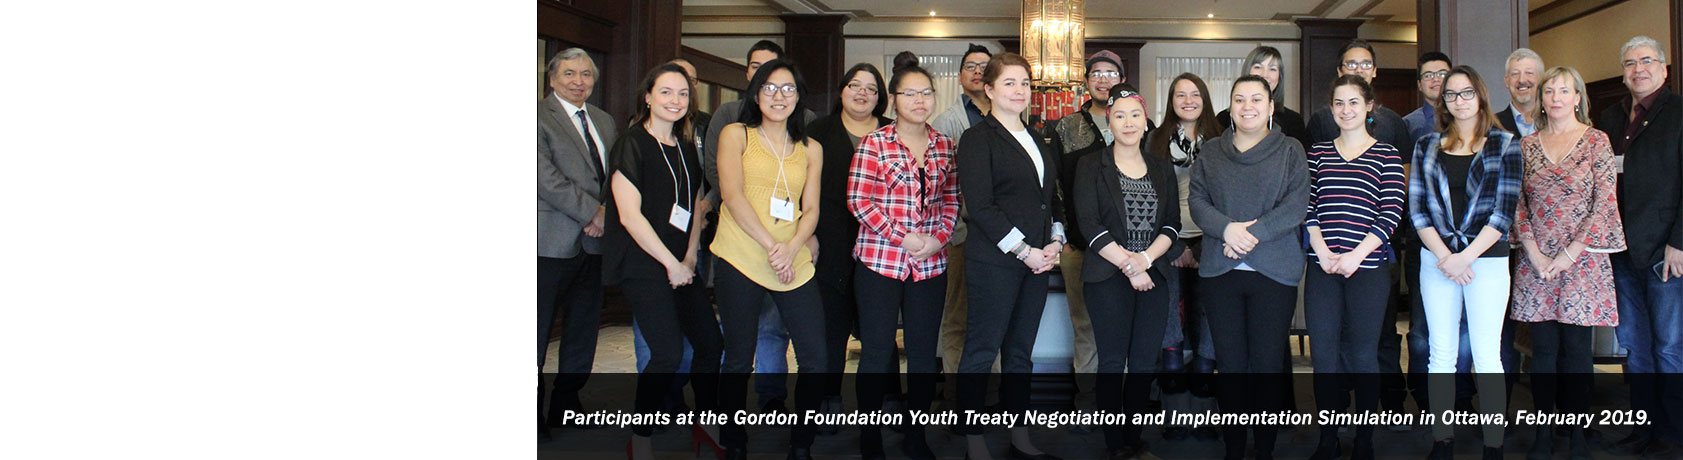 Participants at the Gordon Foundation Youth Treaty Negotiation and Implementation Simulation in Ottawa, February 2019.